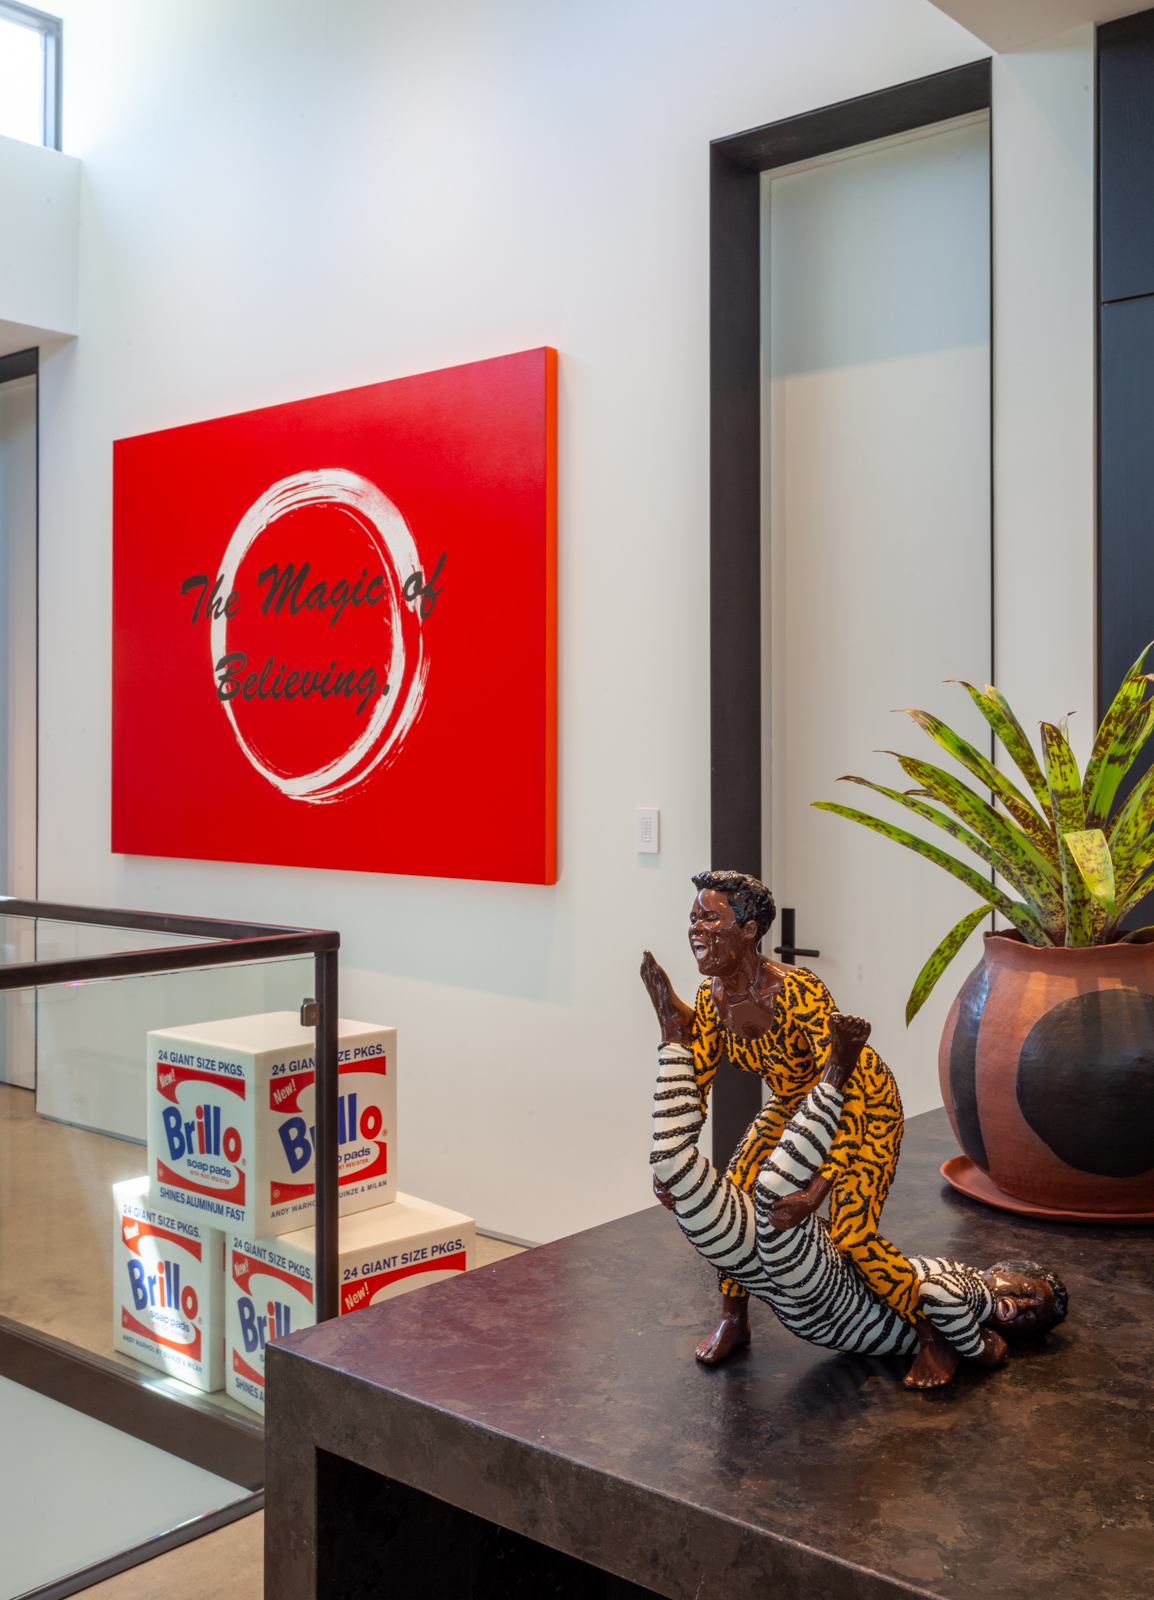 Mickalene Thomas, Brawlin' Spitfire Wrestlers, 2008 (sculpture), and The Magic of Believing, 2014 (painting), in the Gupta Moss collection, Chicago.